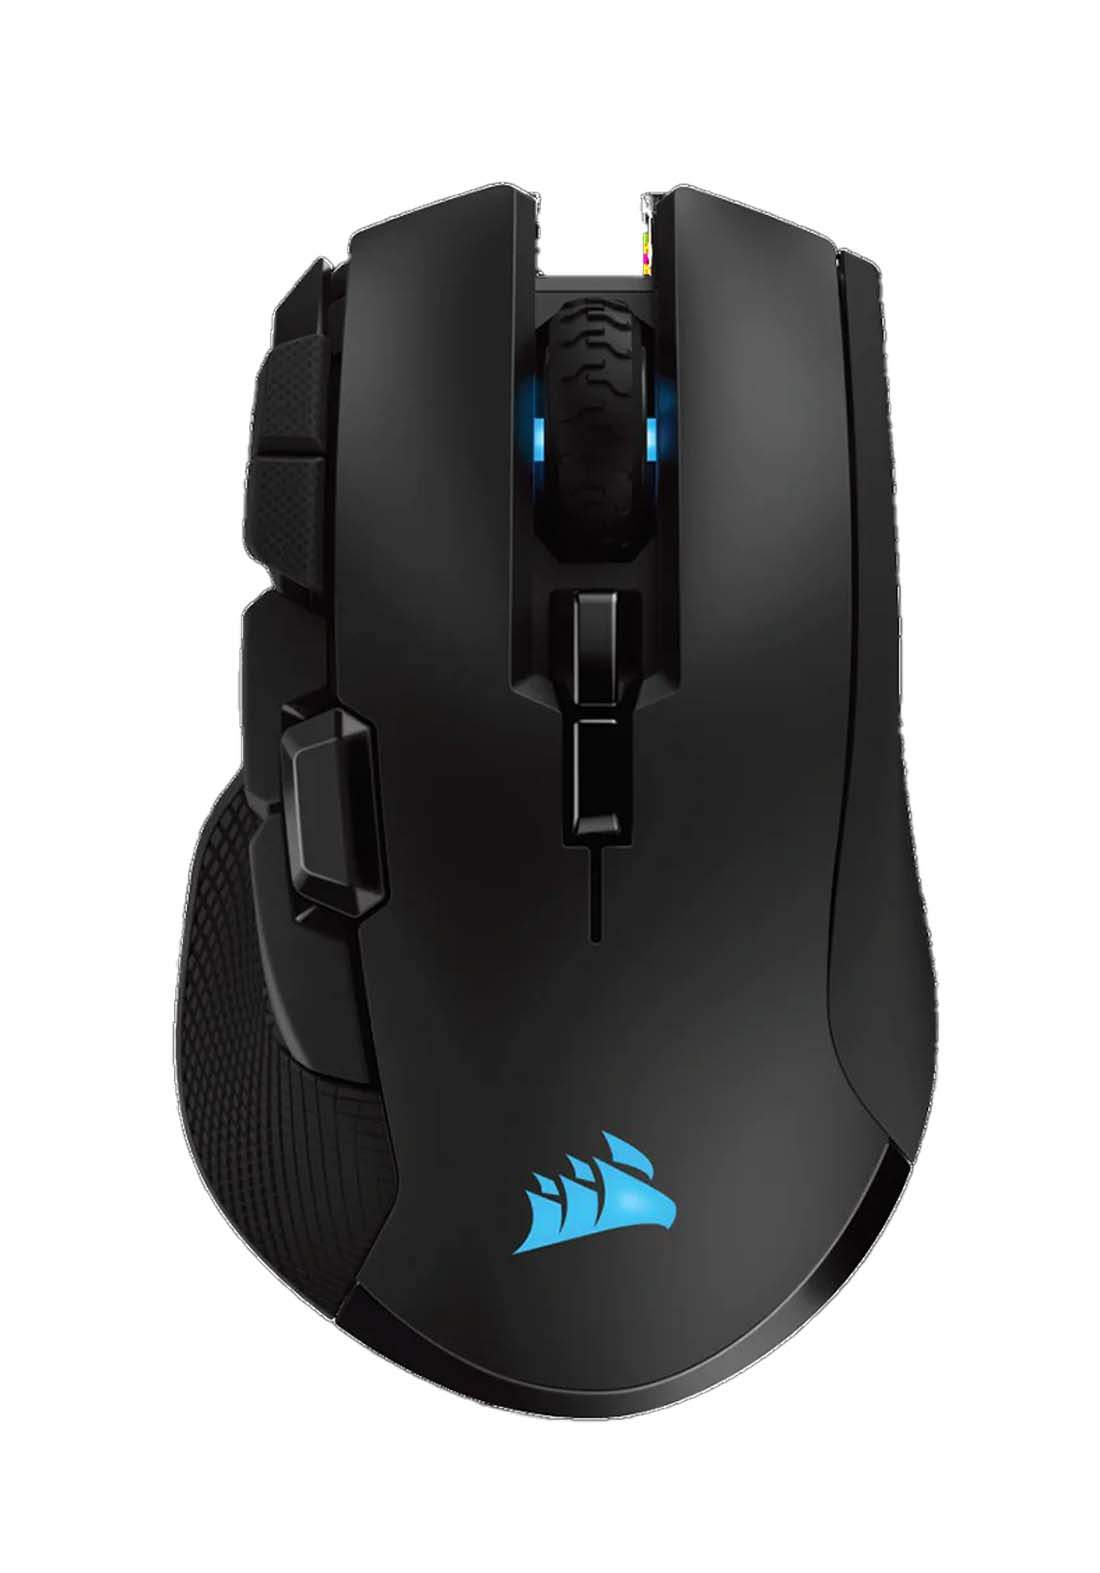 Corsair Ironclaw RGB Wireless Gaming Mouse - Black ماوس